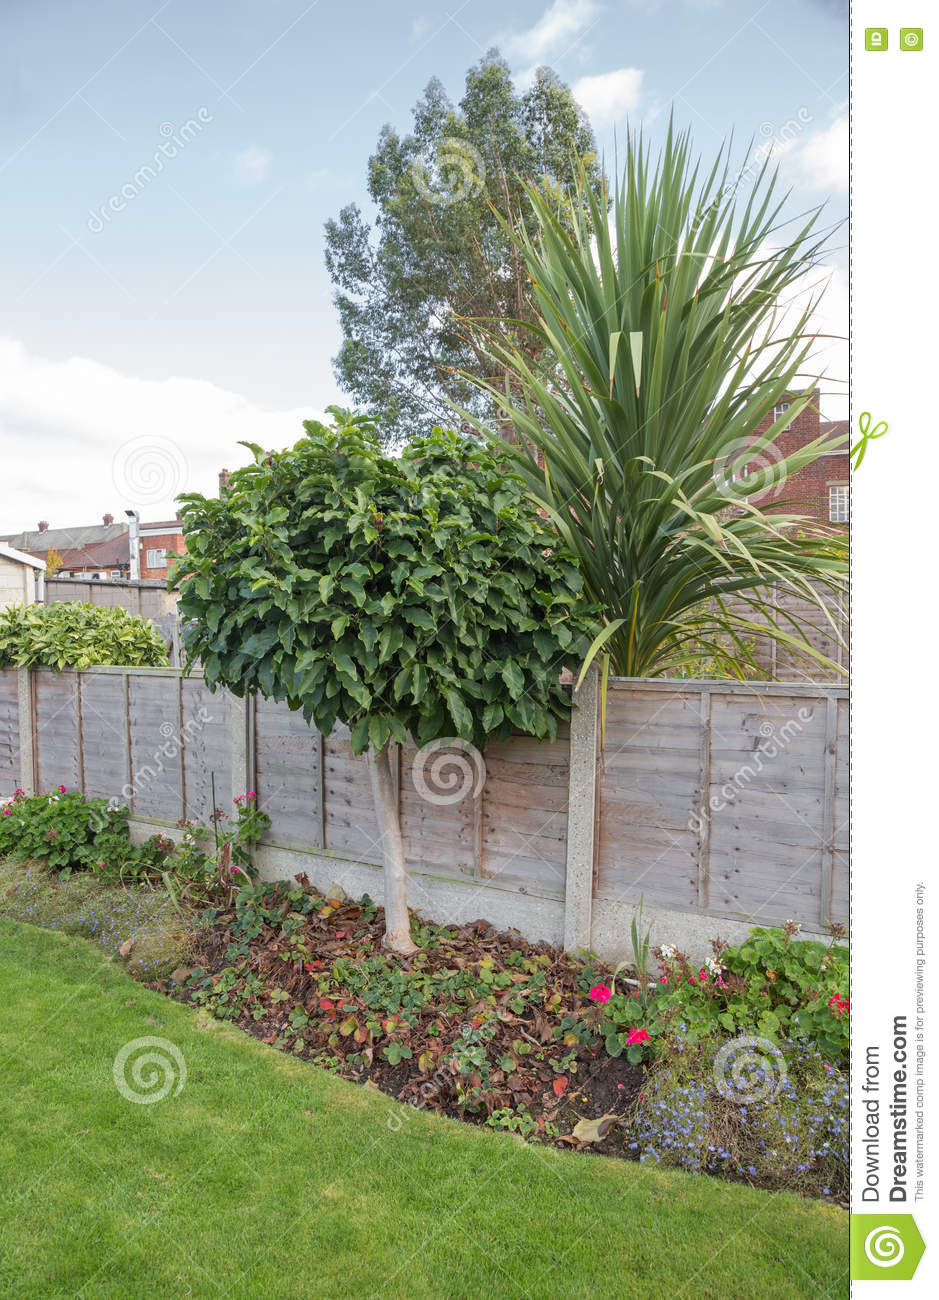 Magnolia Tree In The Garden Flower Bed Stock Photo Image Of Shot